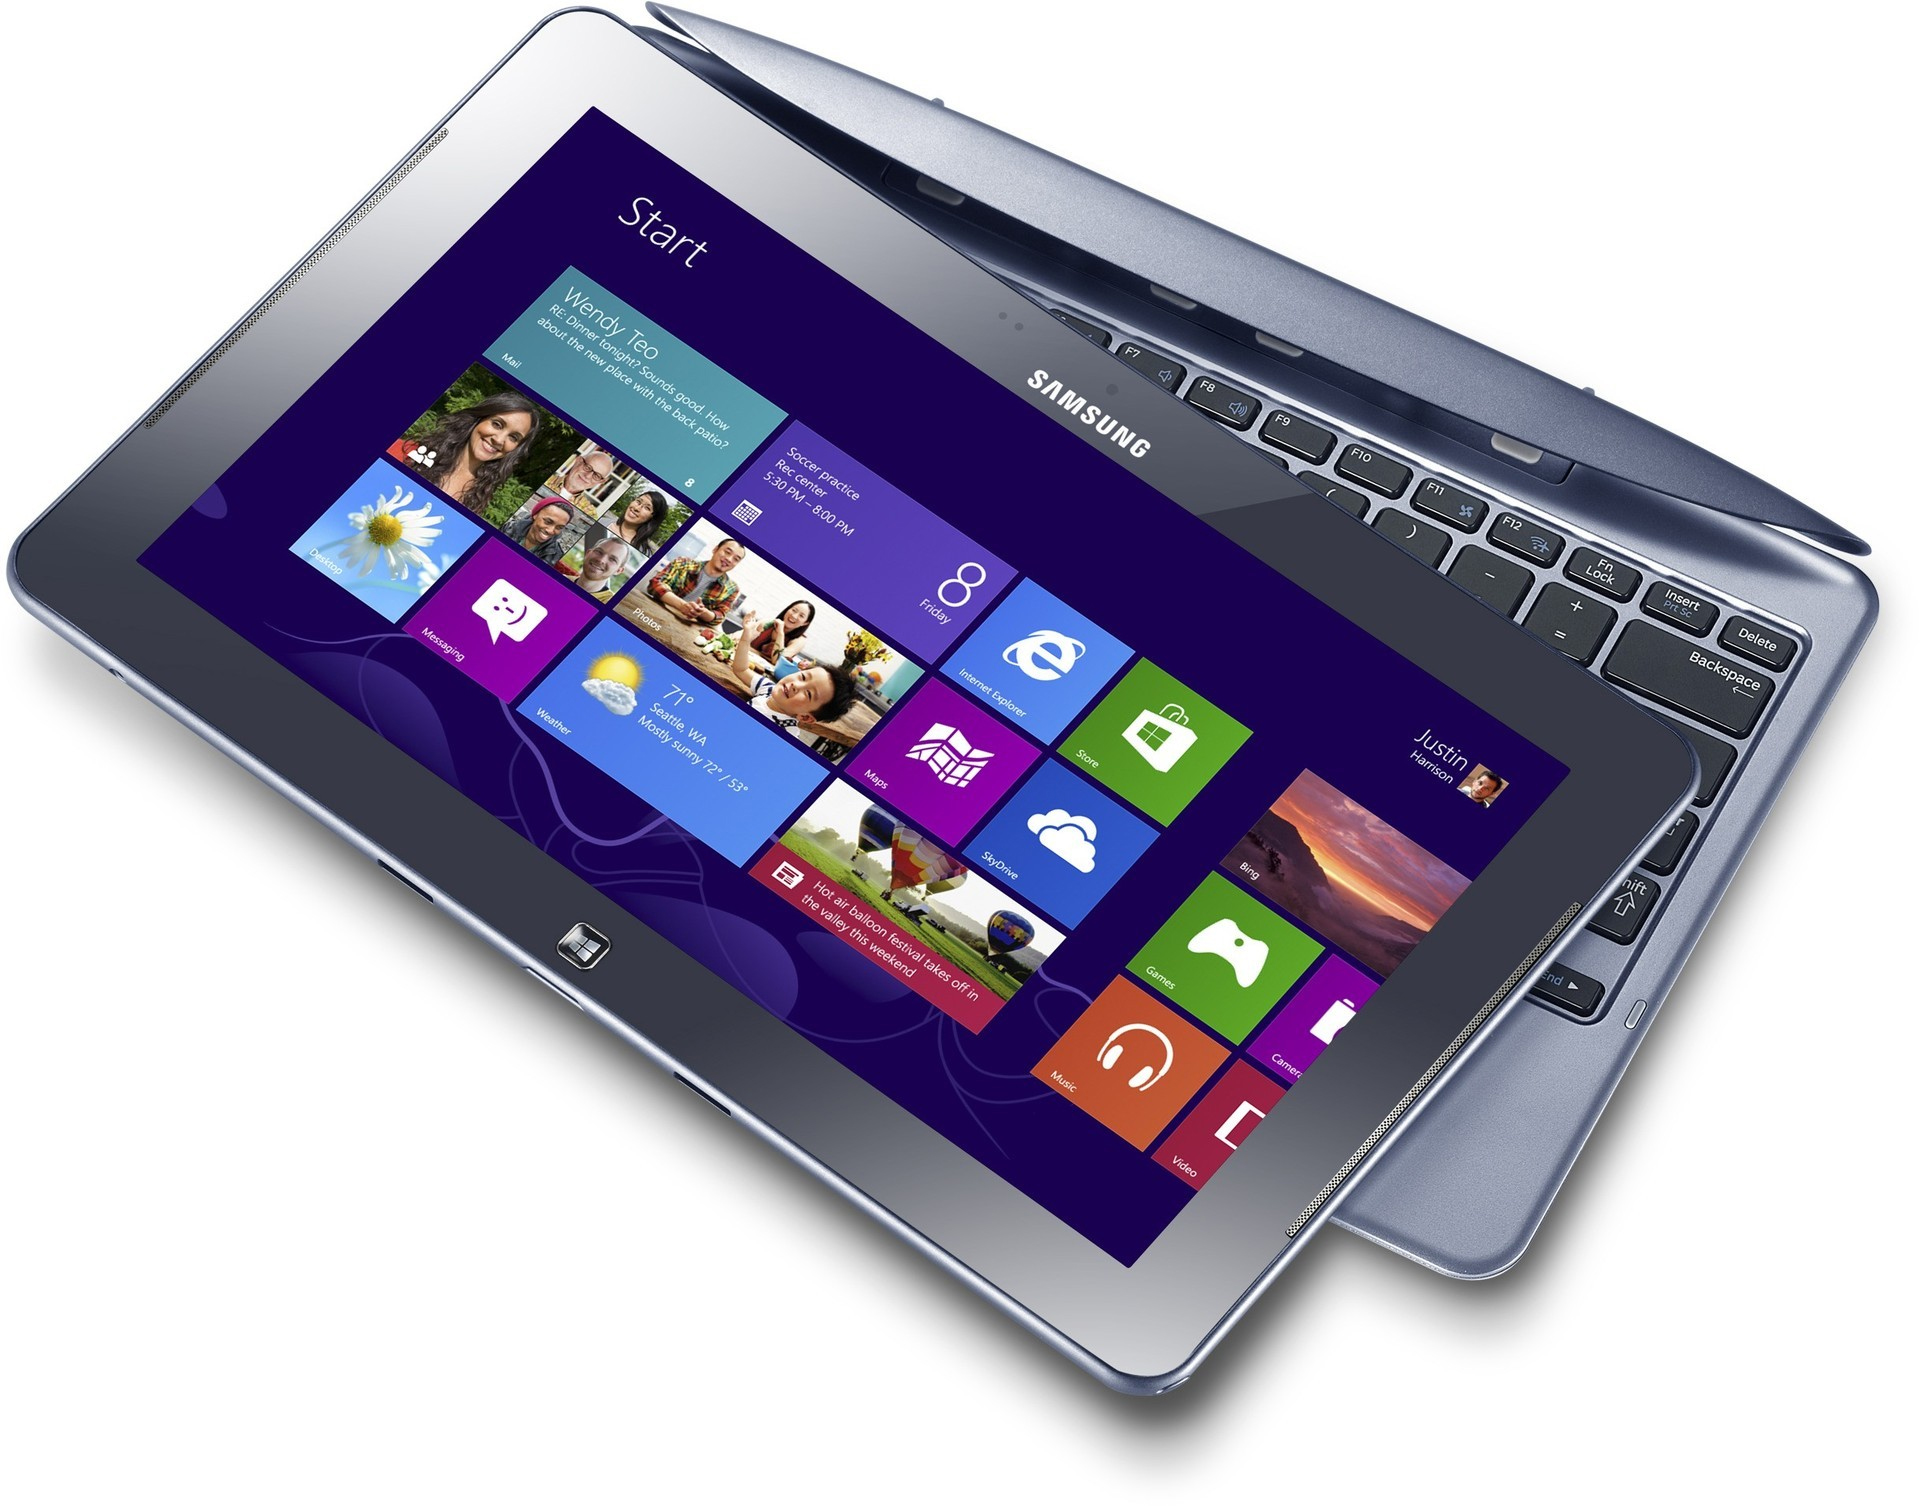 Harga Laptop Samsung Ativ Smart pc Harga Samsung Ativ Smart pc